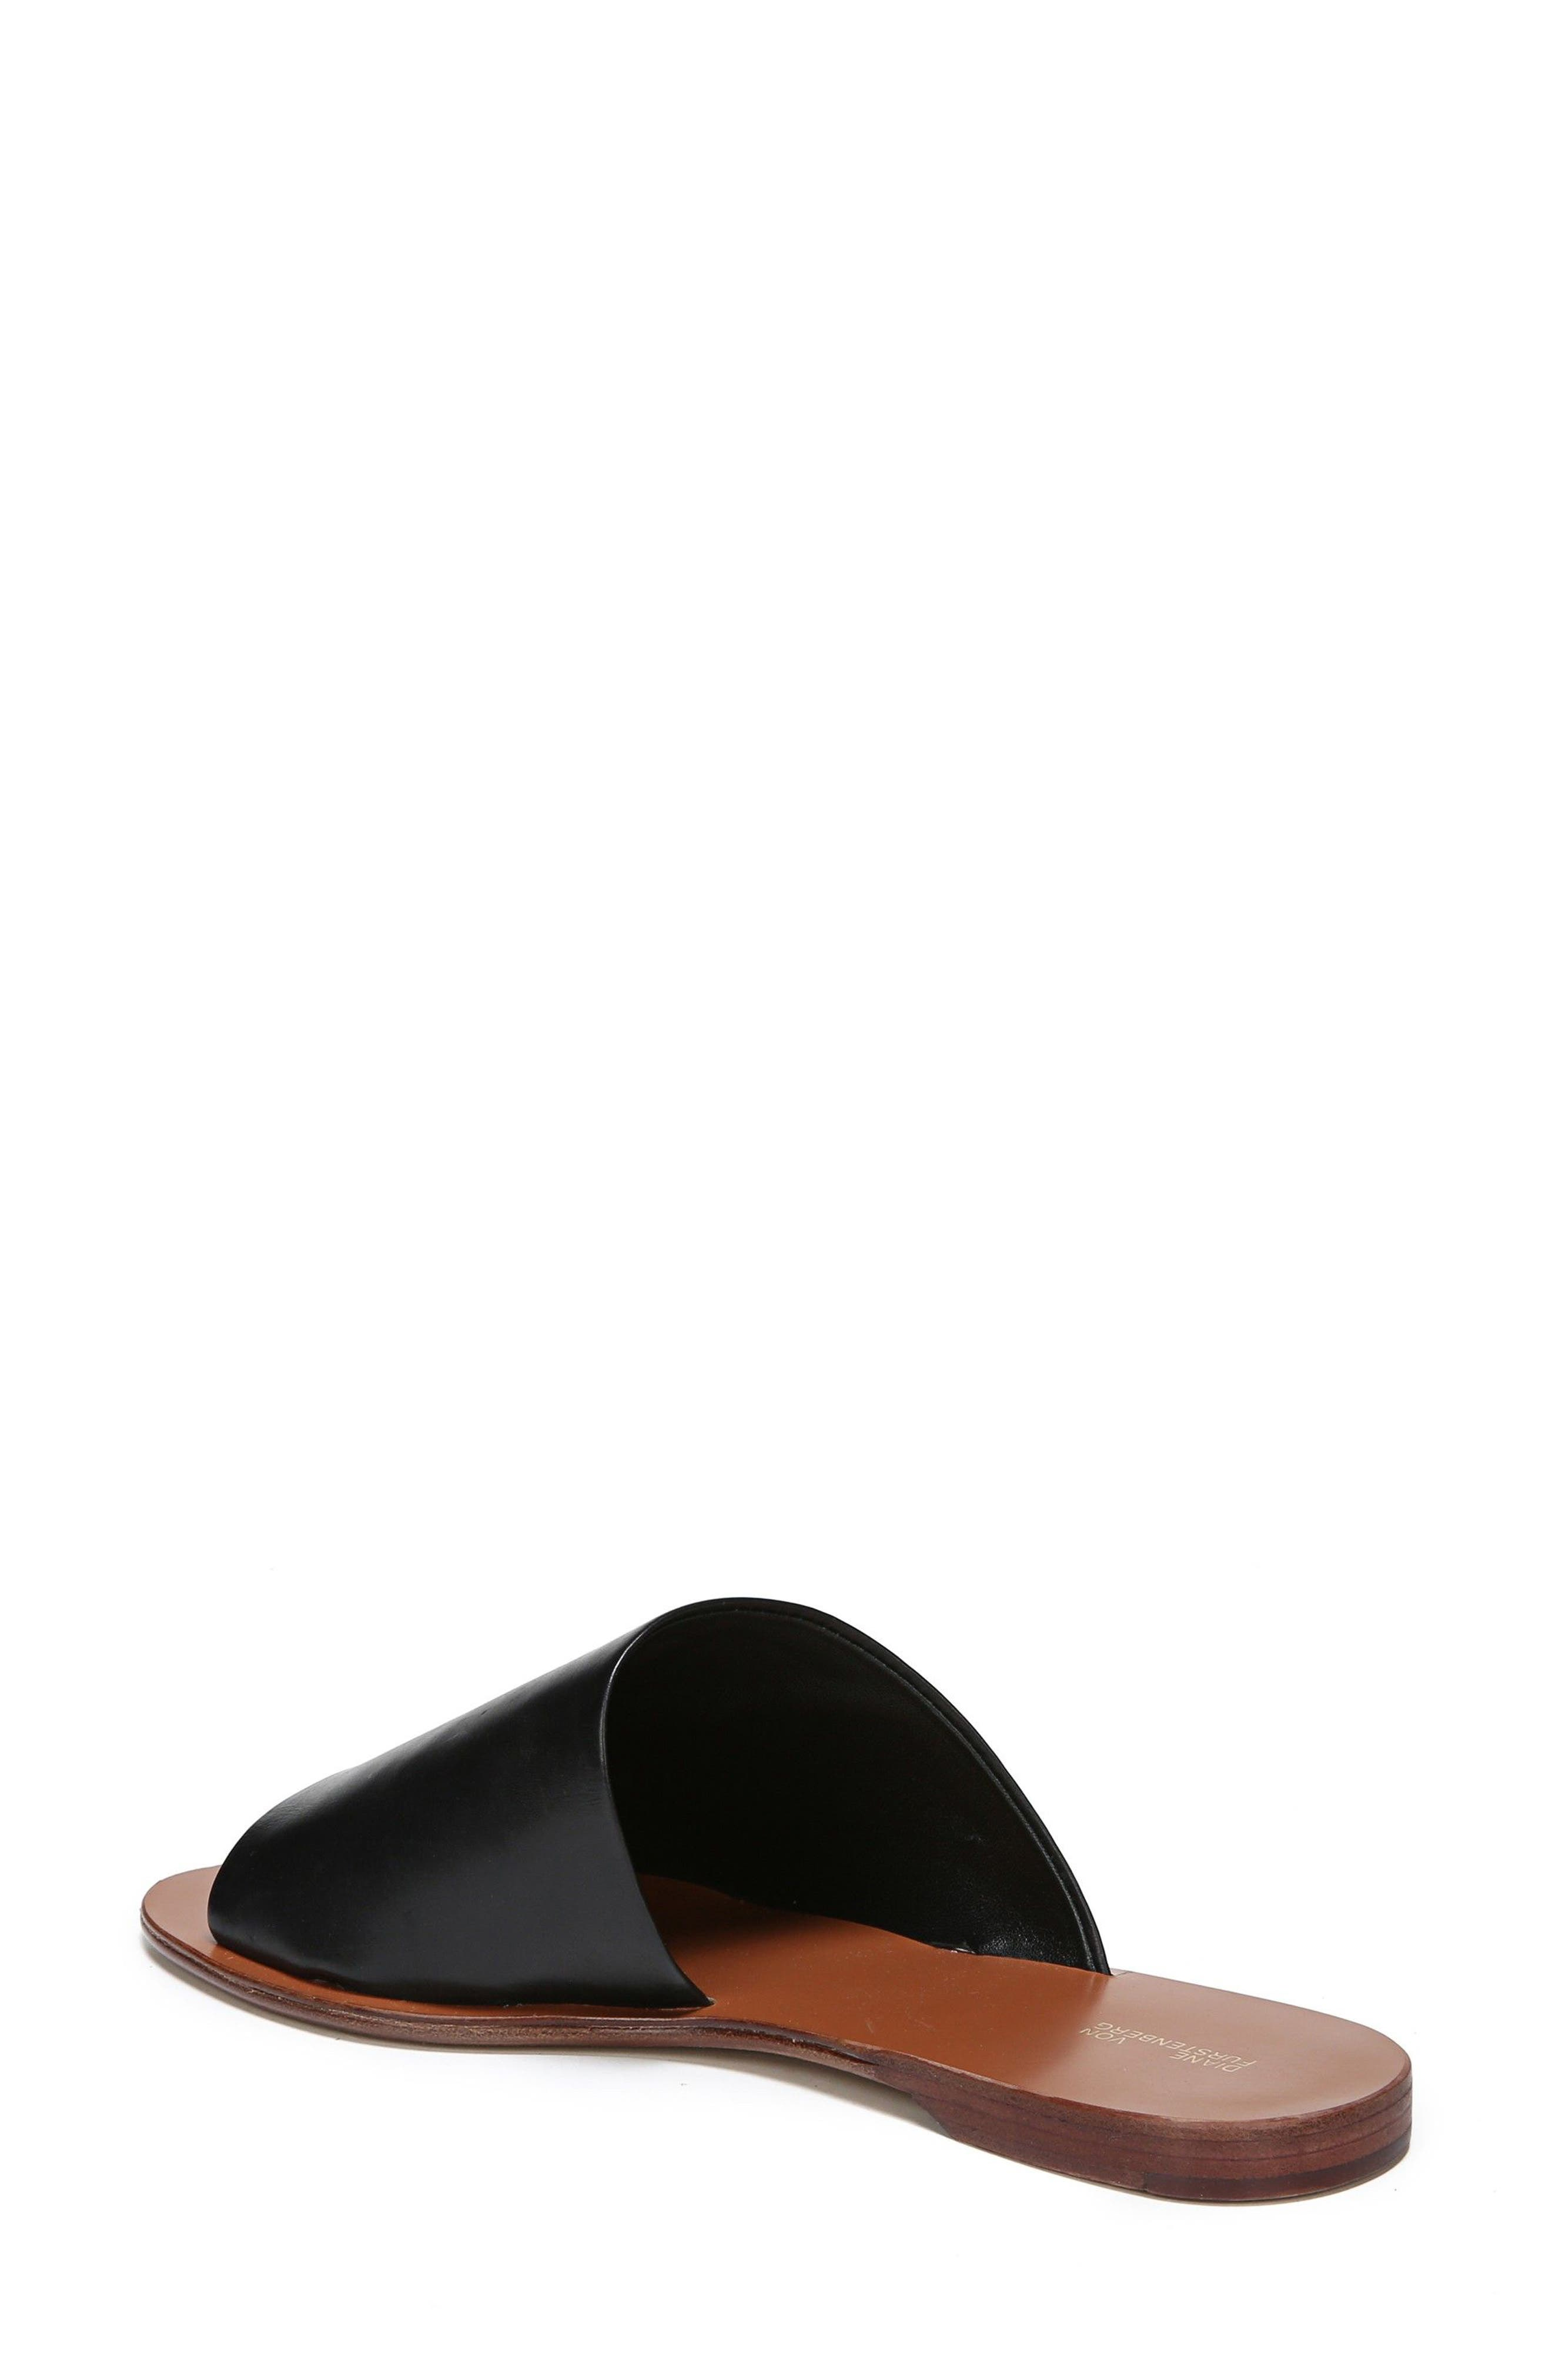 Barrett Slide Sandal,                             Alternate thumbnail 3, color,                             Black